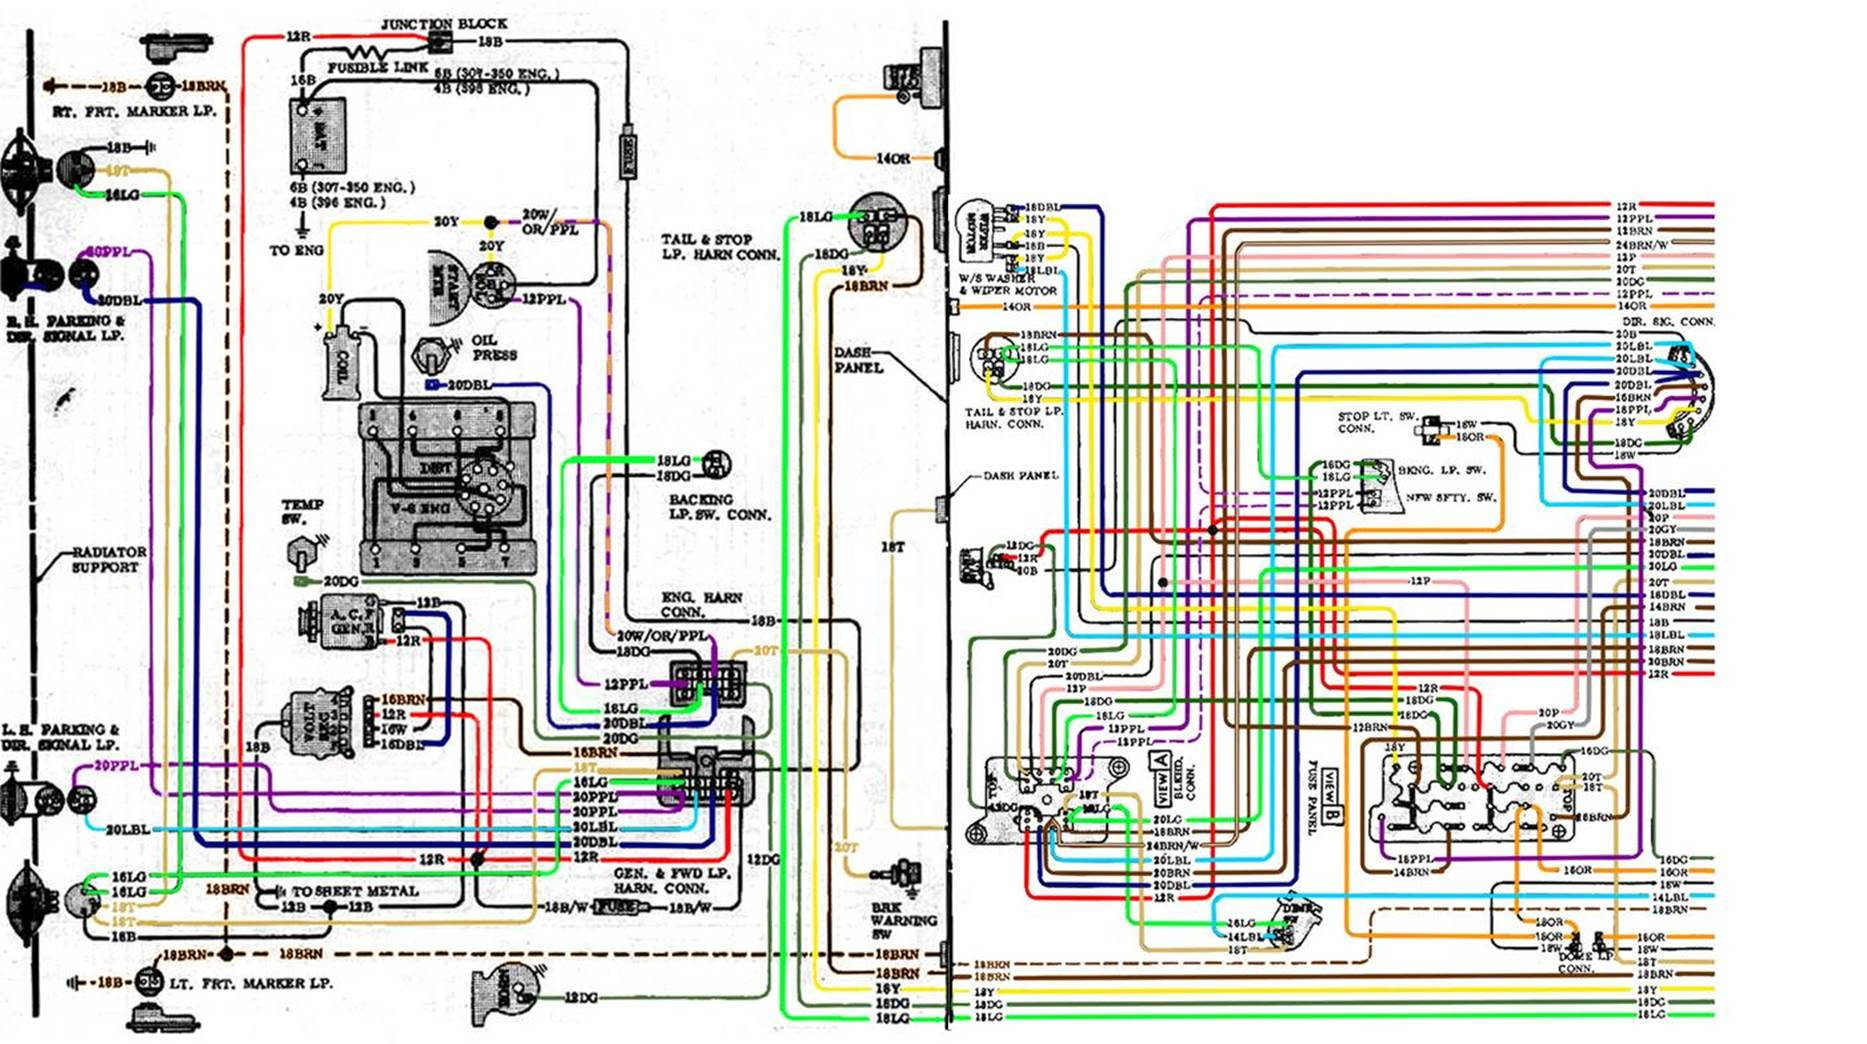 image002 72 chevy truck wiring diagram schematic for 1967 chevrolet pickup 1985 chevy c10 wiring harness at honlapkeszites.co